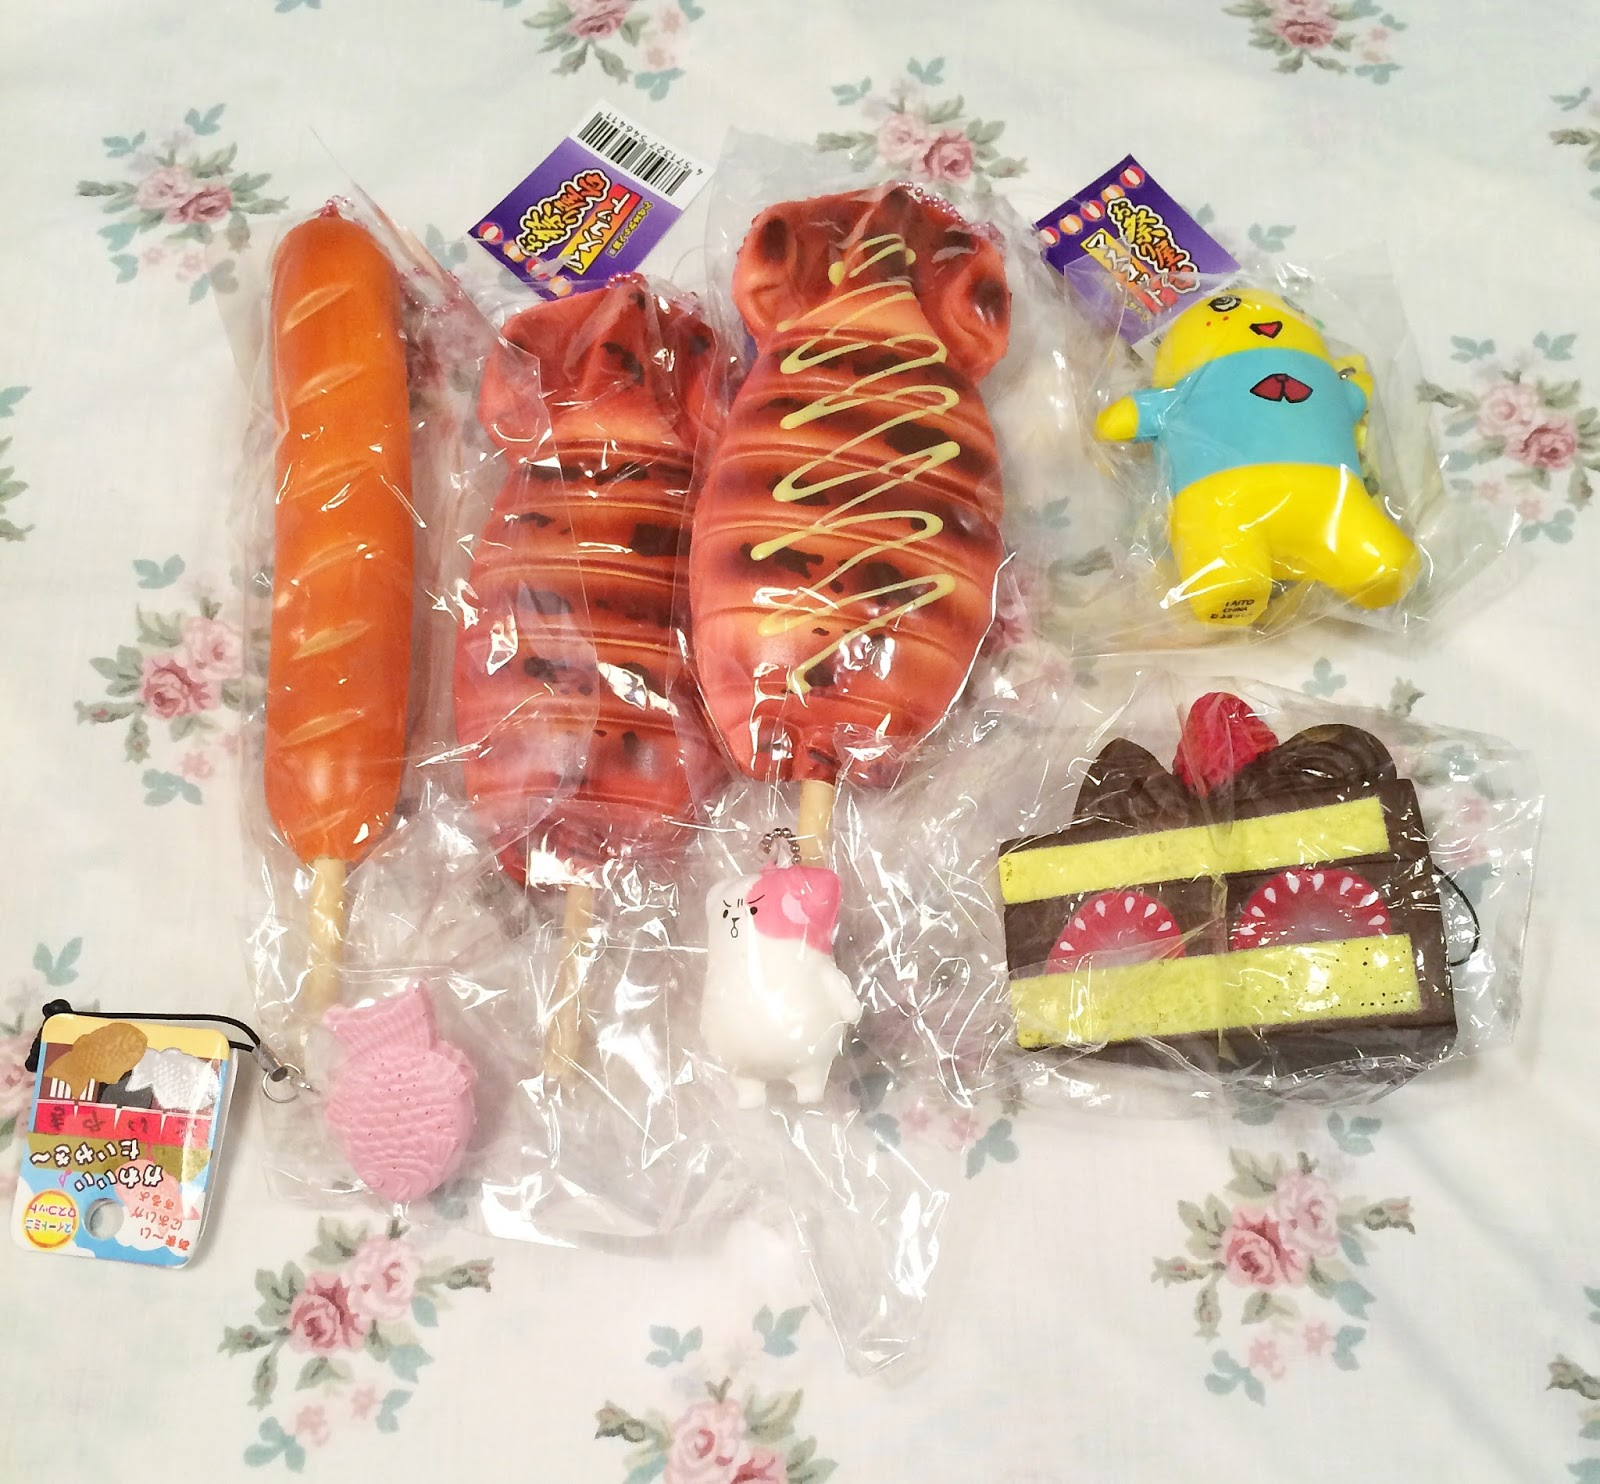 Squishy Haul 2015 : Peach Booty Reviews (  ?  ): Squishies from TaoBao! haul/review